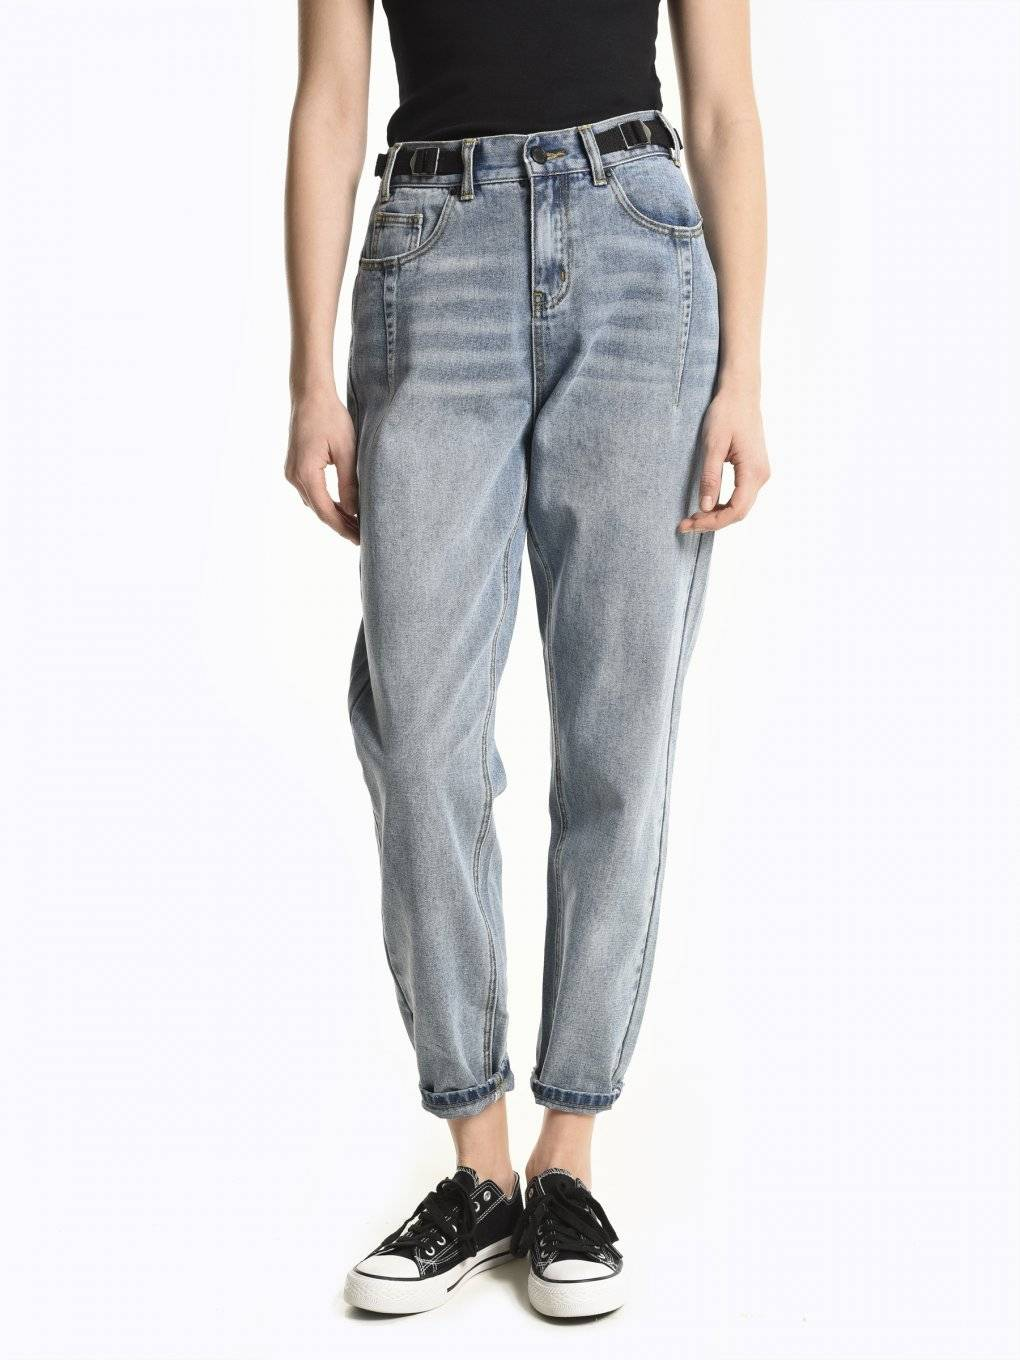 High-waist carrot fit jeans